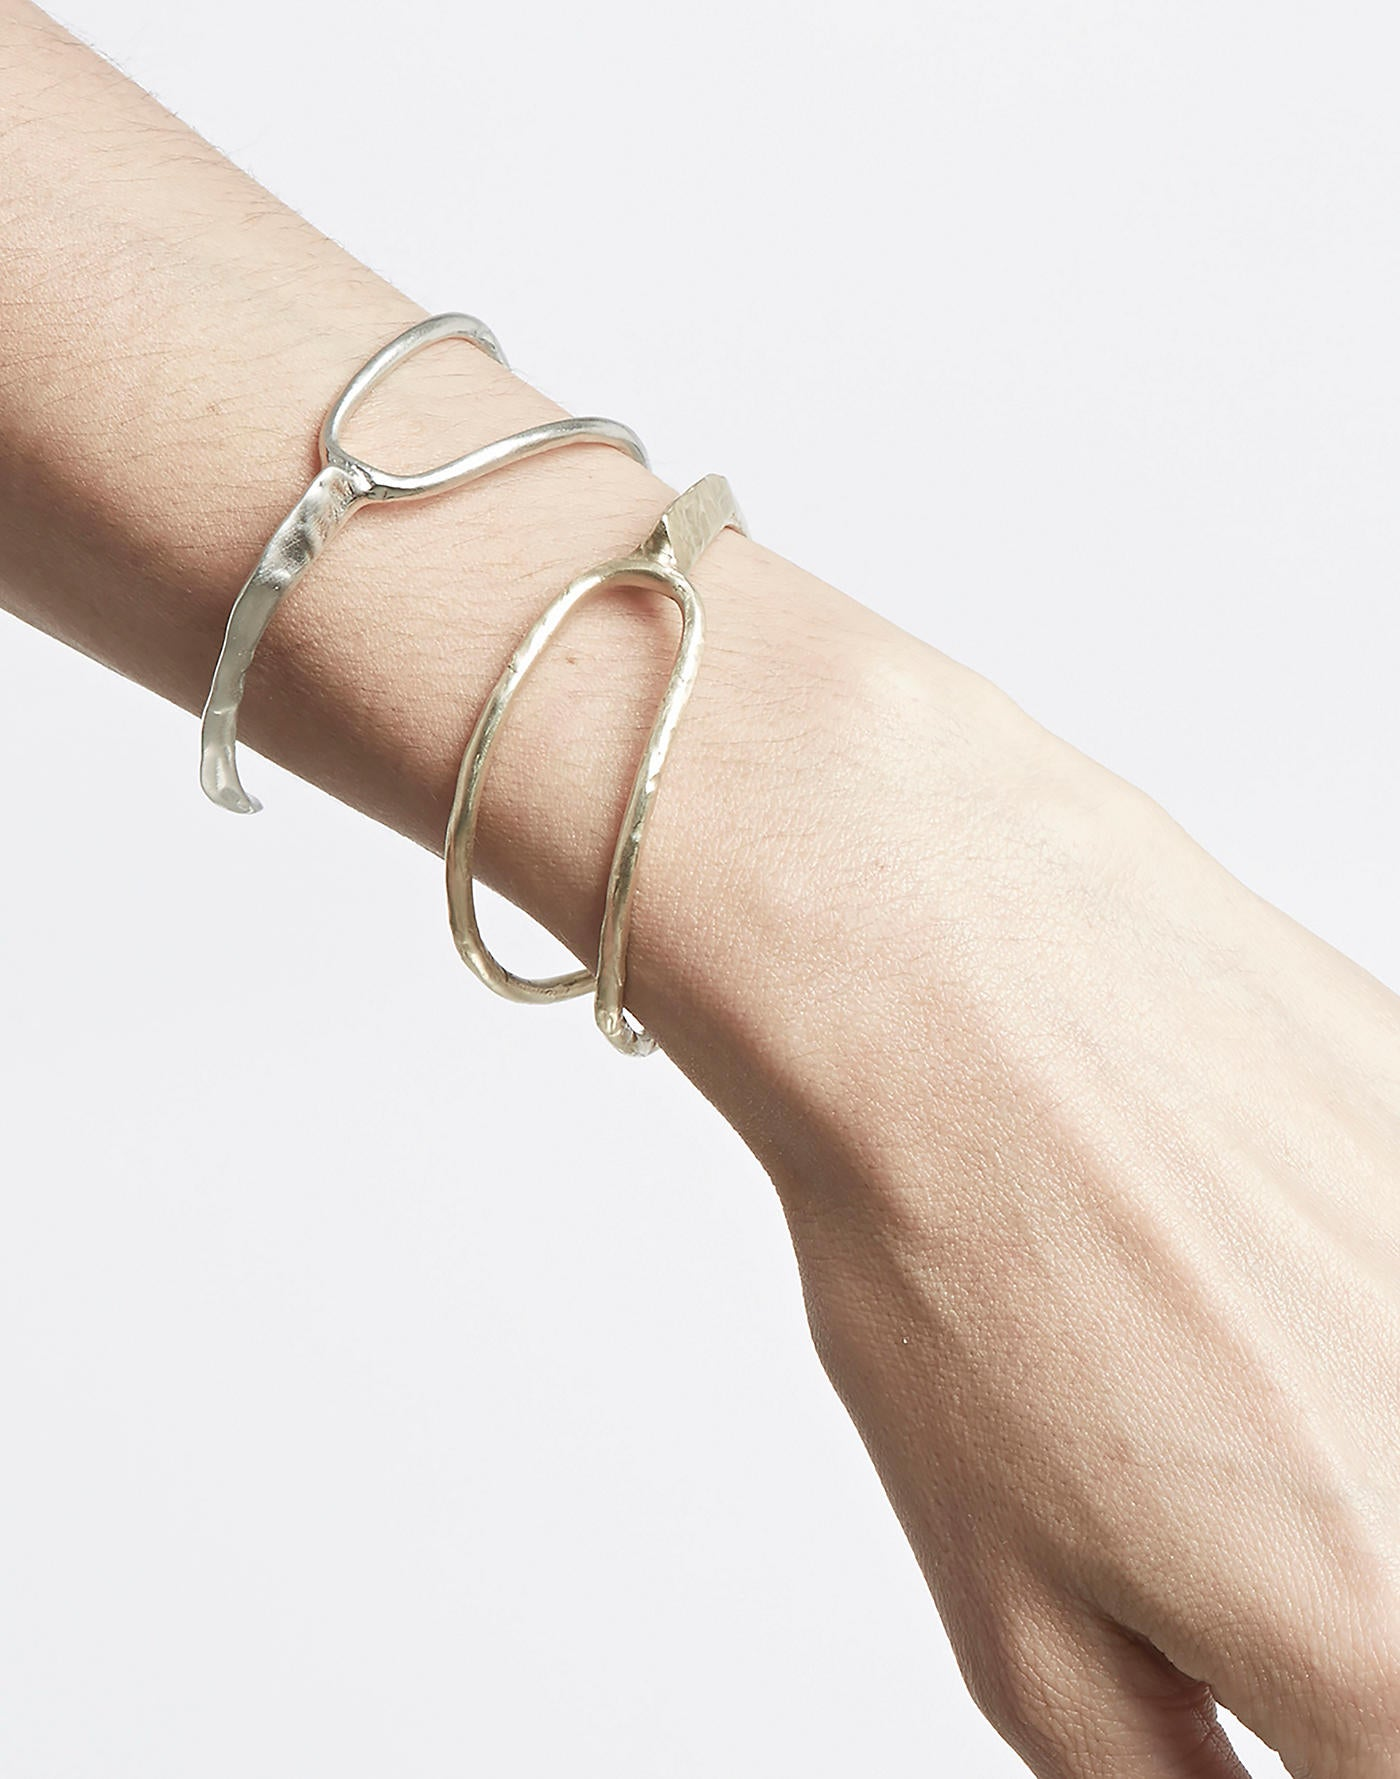 Odette New York Split Ridge Cuff